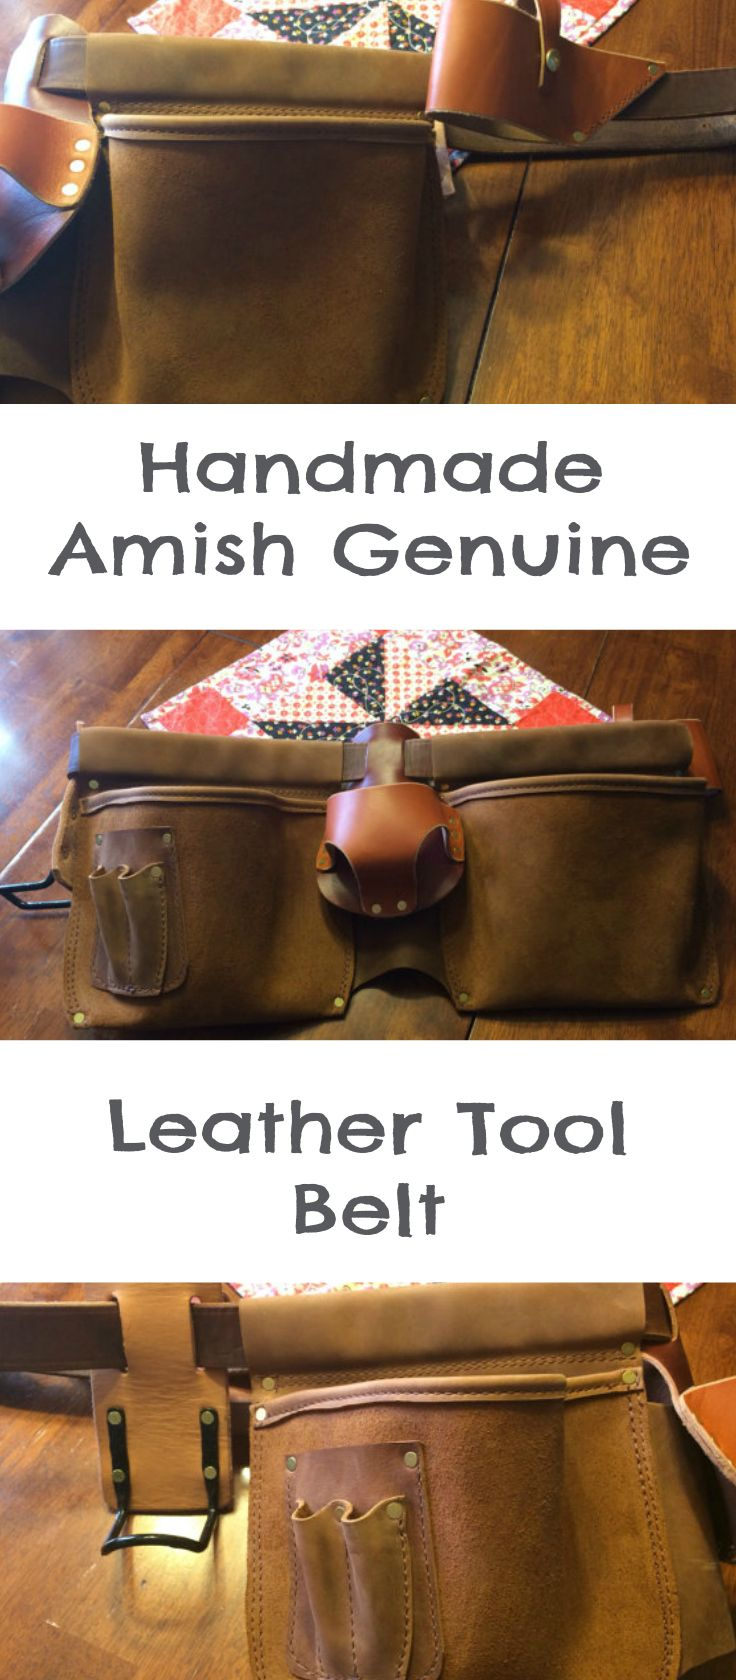 handmade leather tool belt. use this handmade amish genuine leather tool belt to hold all of your tools when working